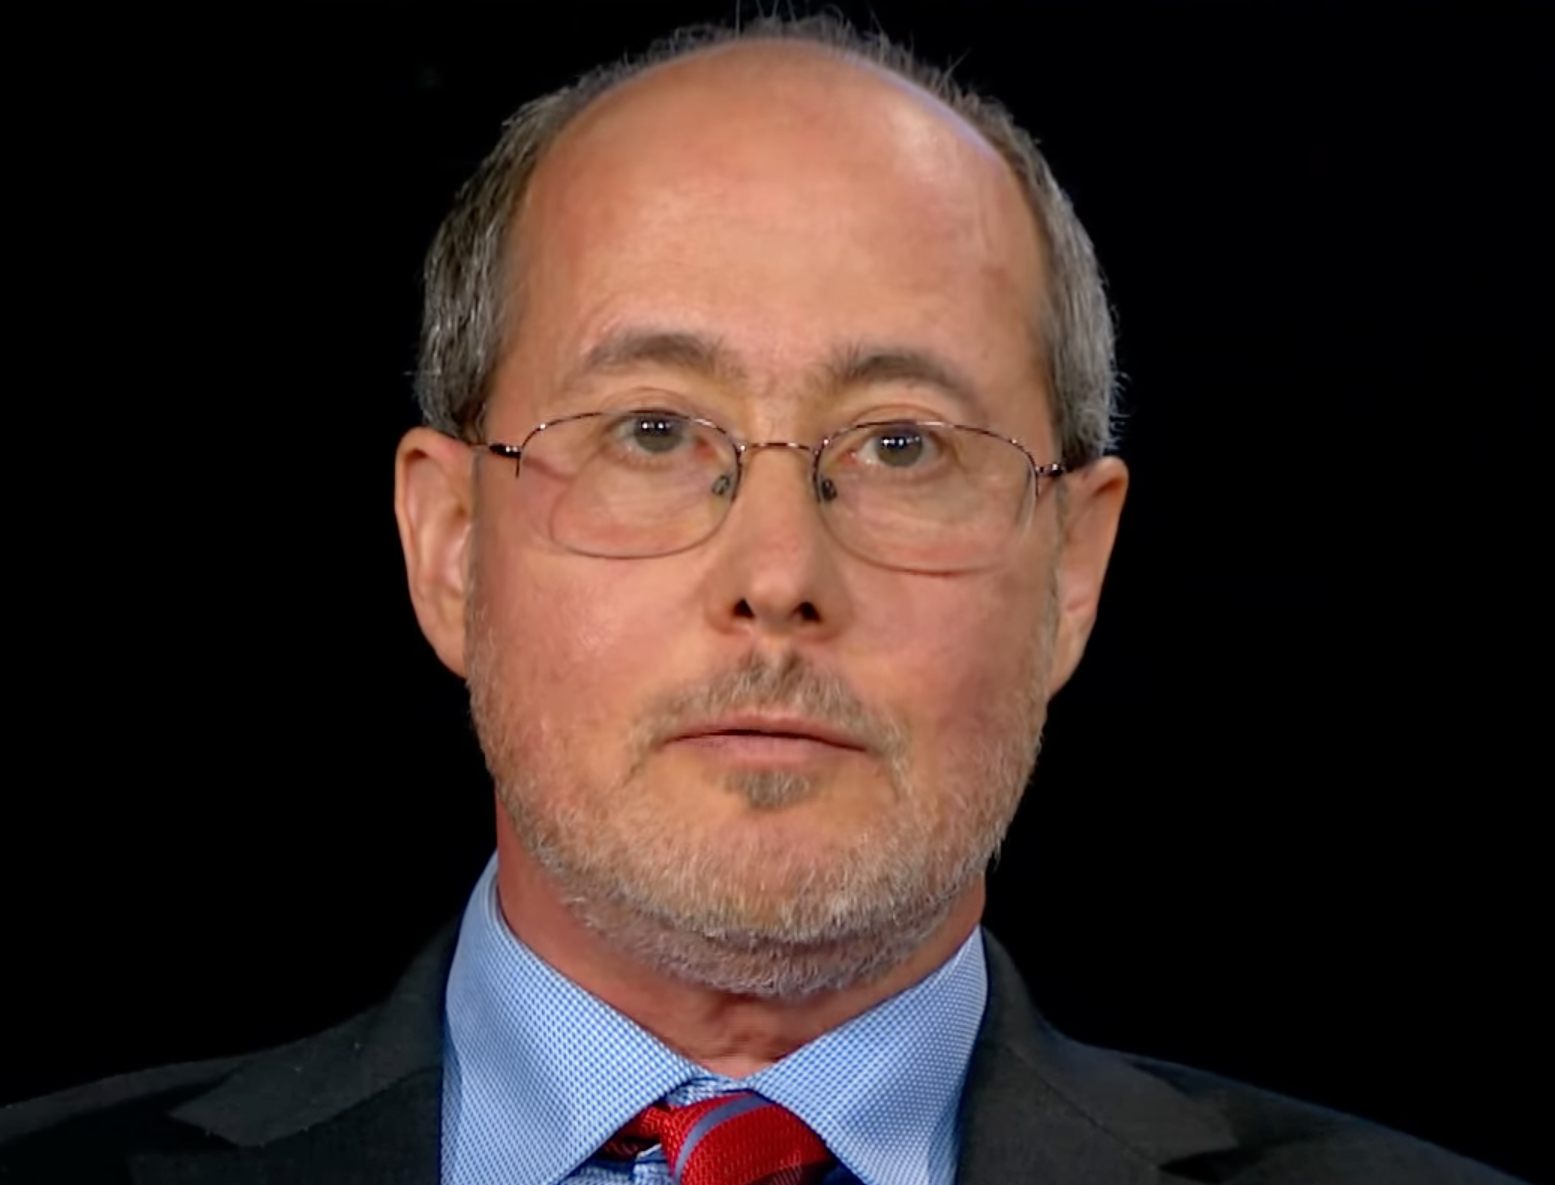 The neuroscientist Ben Barres appearing on Charlie Rose's show